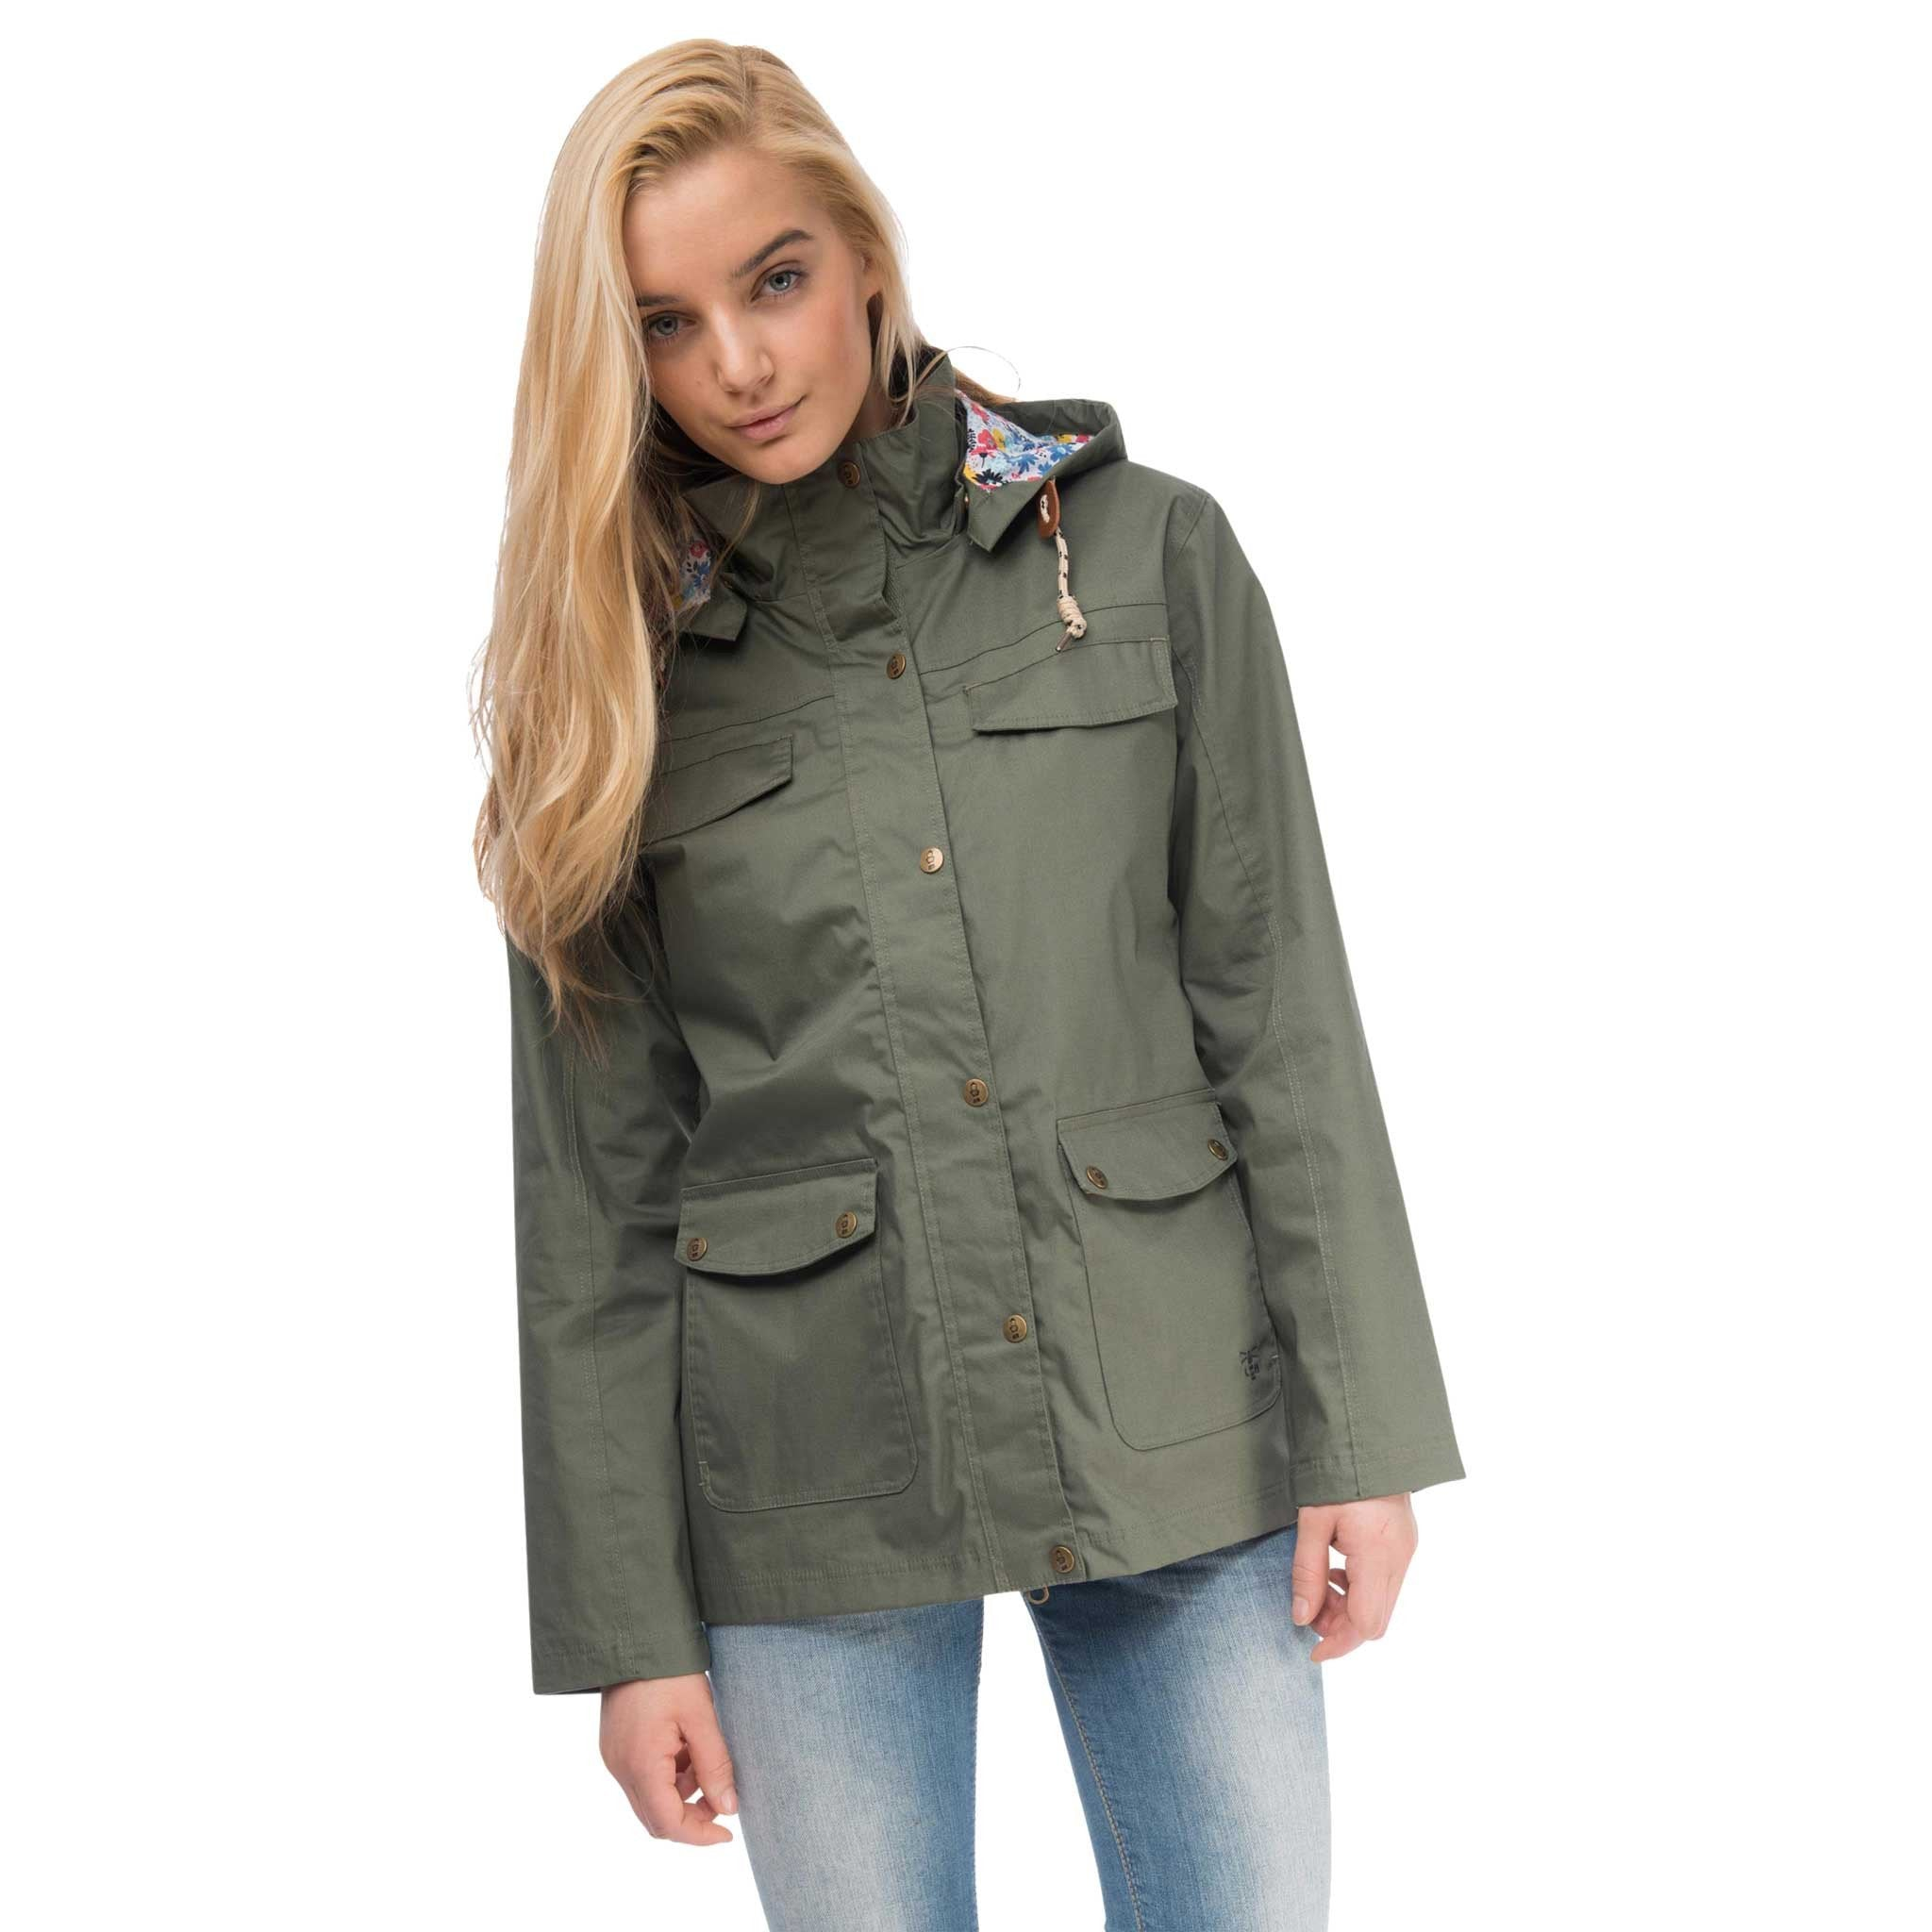 Romy Womens Waterproof Jacket with Cotton Outer in Willow Green be1fe120ba